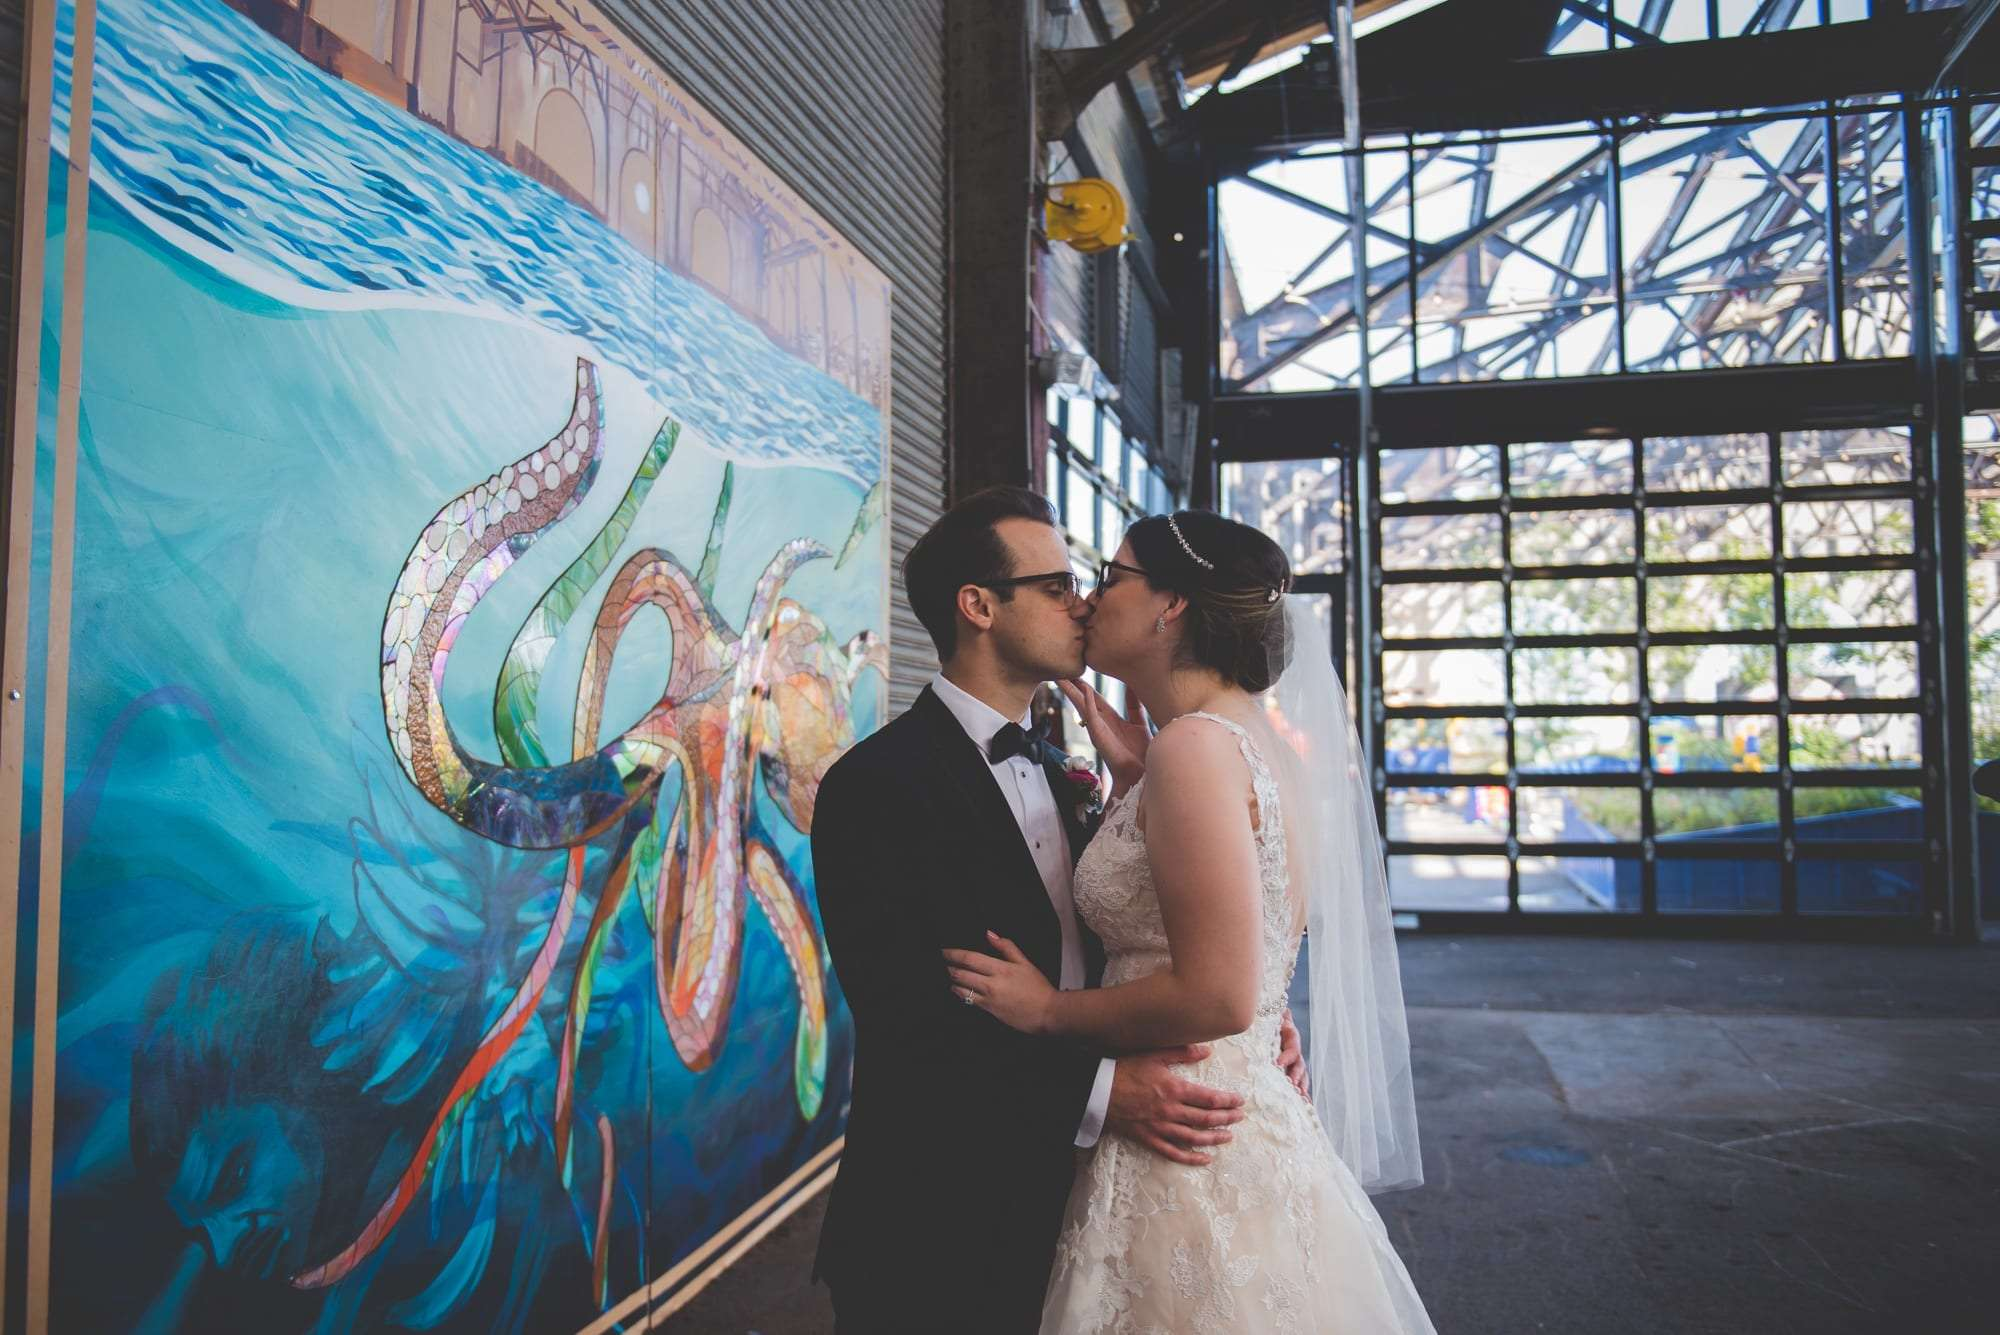 Philadelphia murals and wedding photo locations cherry street pier